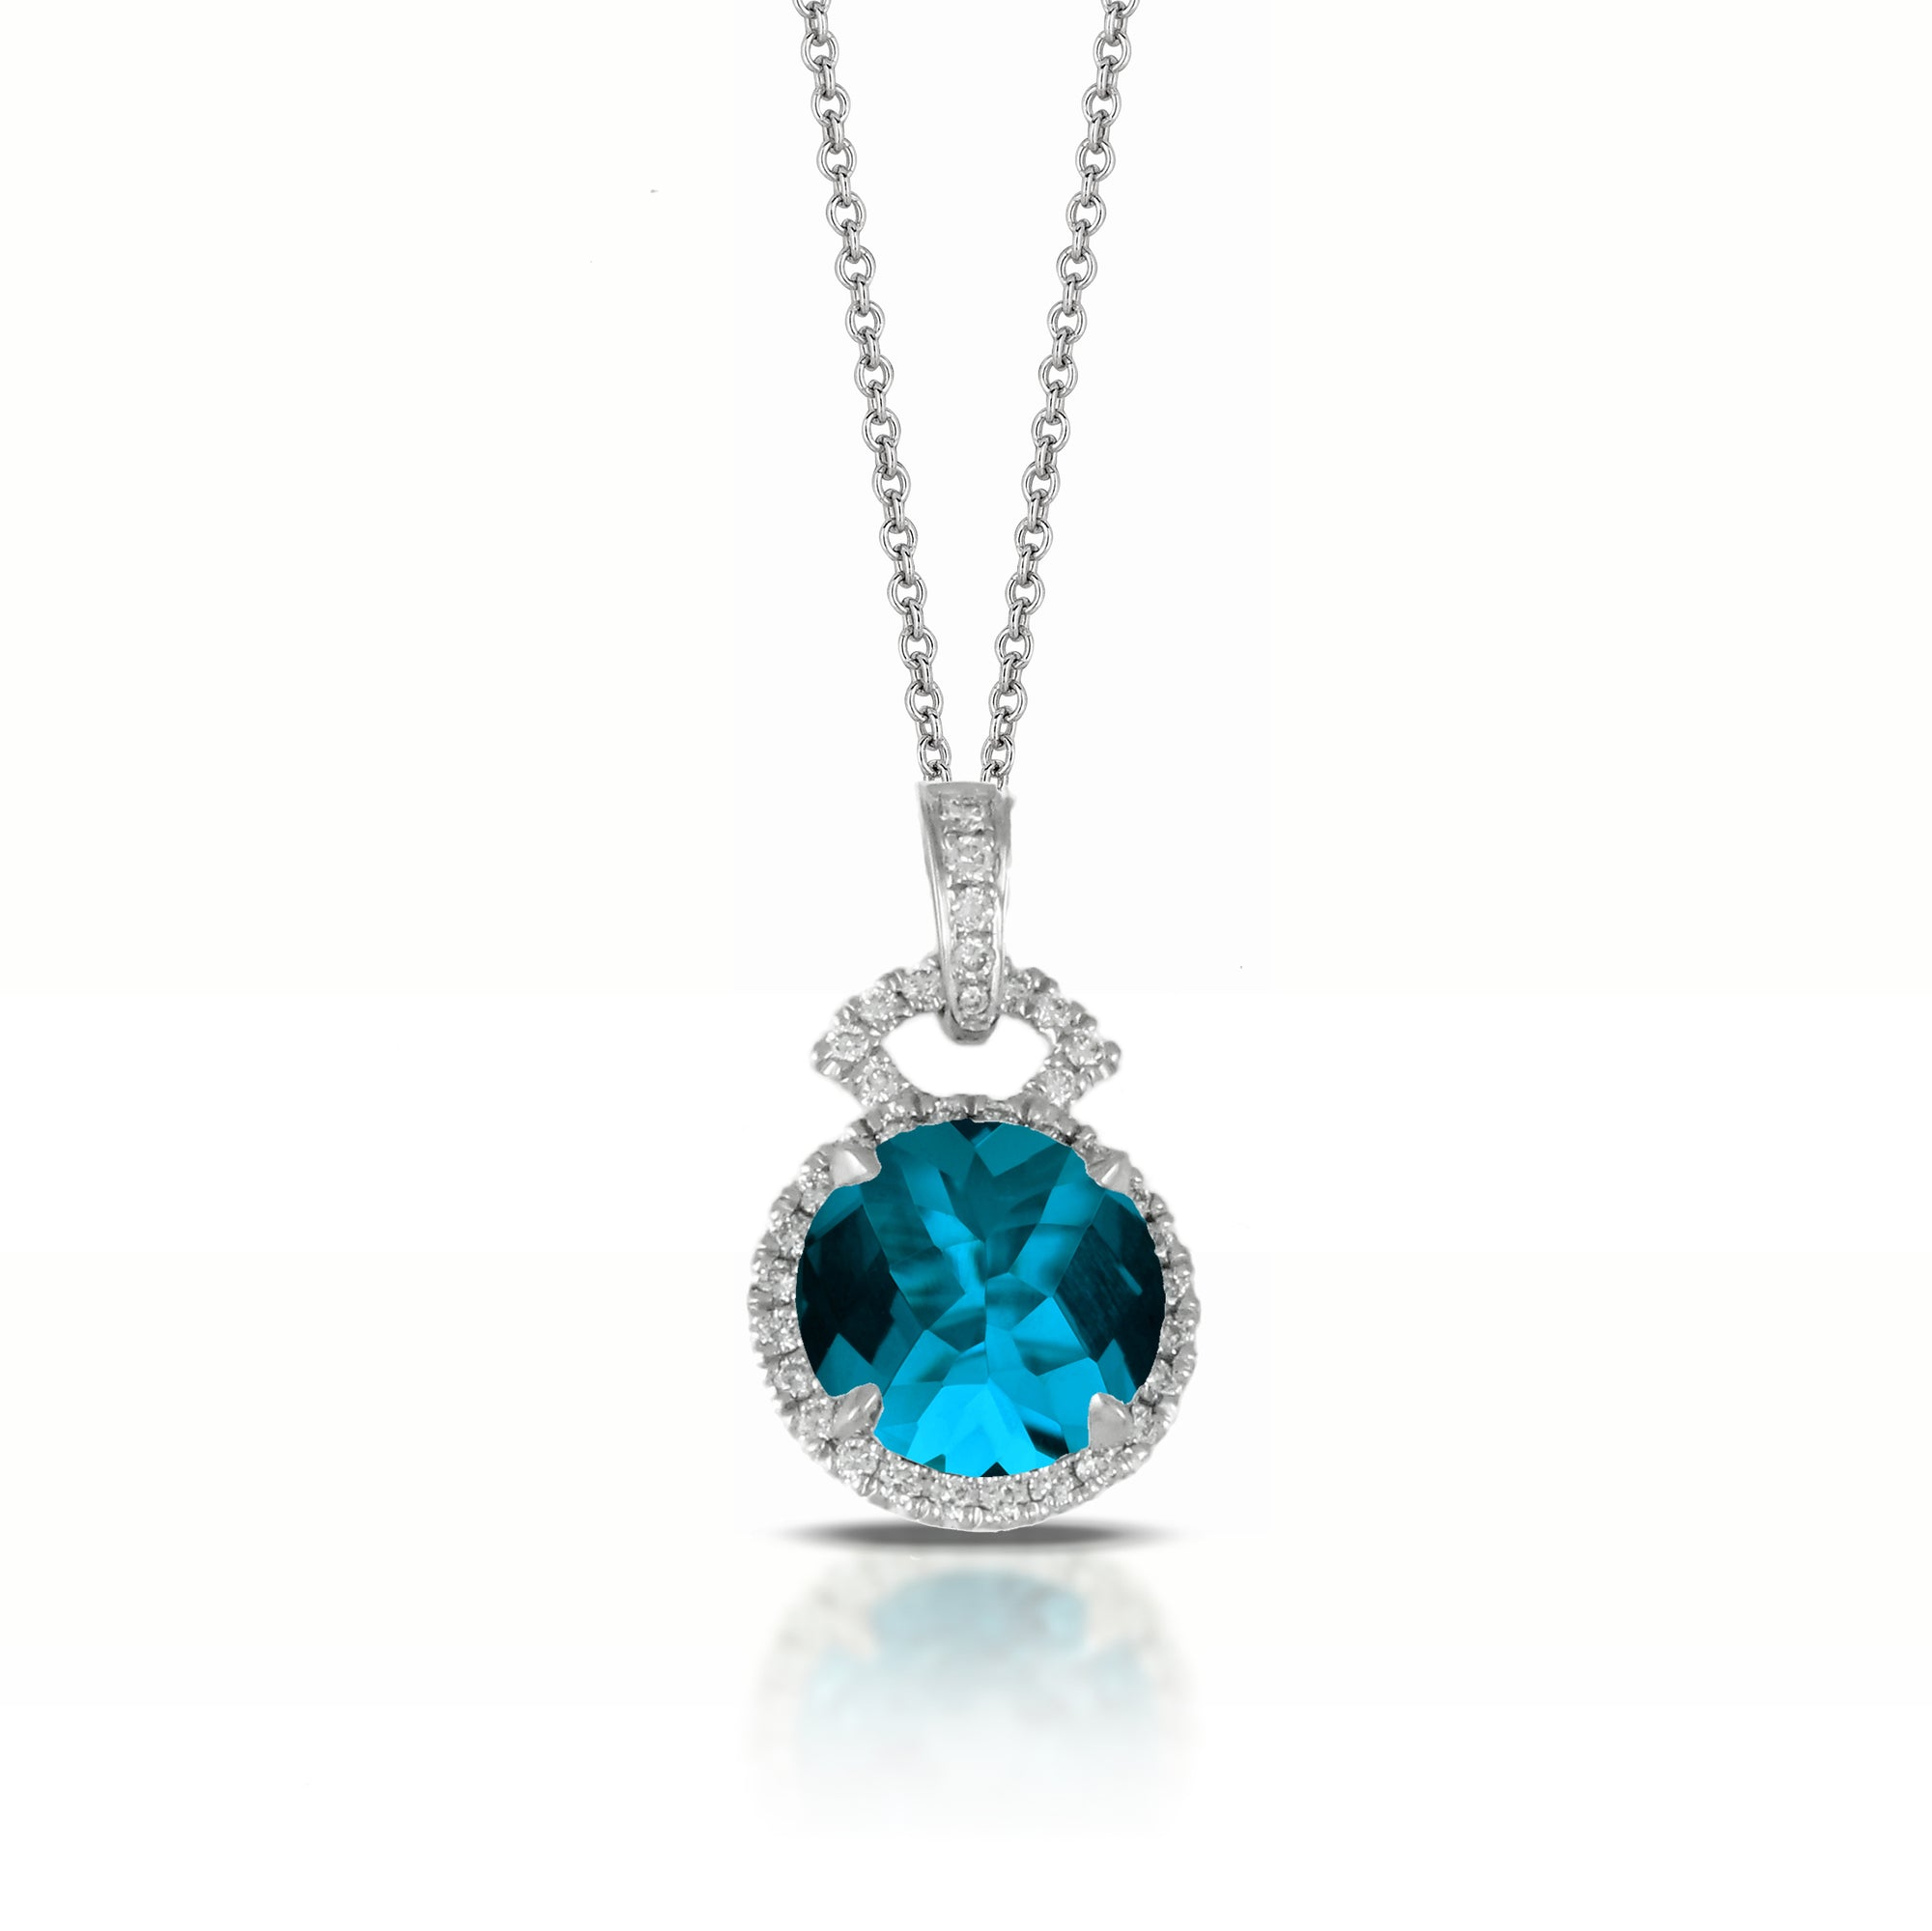 London Blue Topaz and Diamond Necklace by Doves - Talisman Collection Fine Jewelers